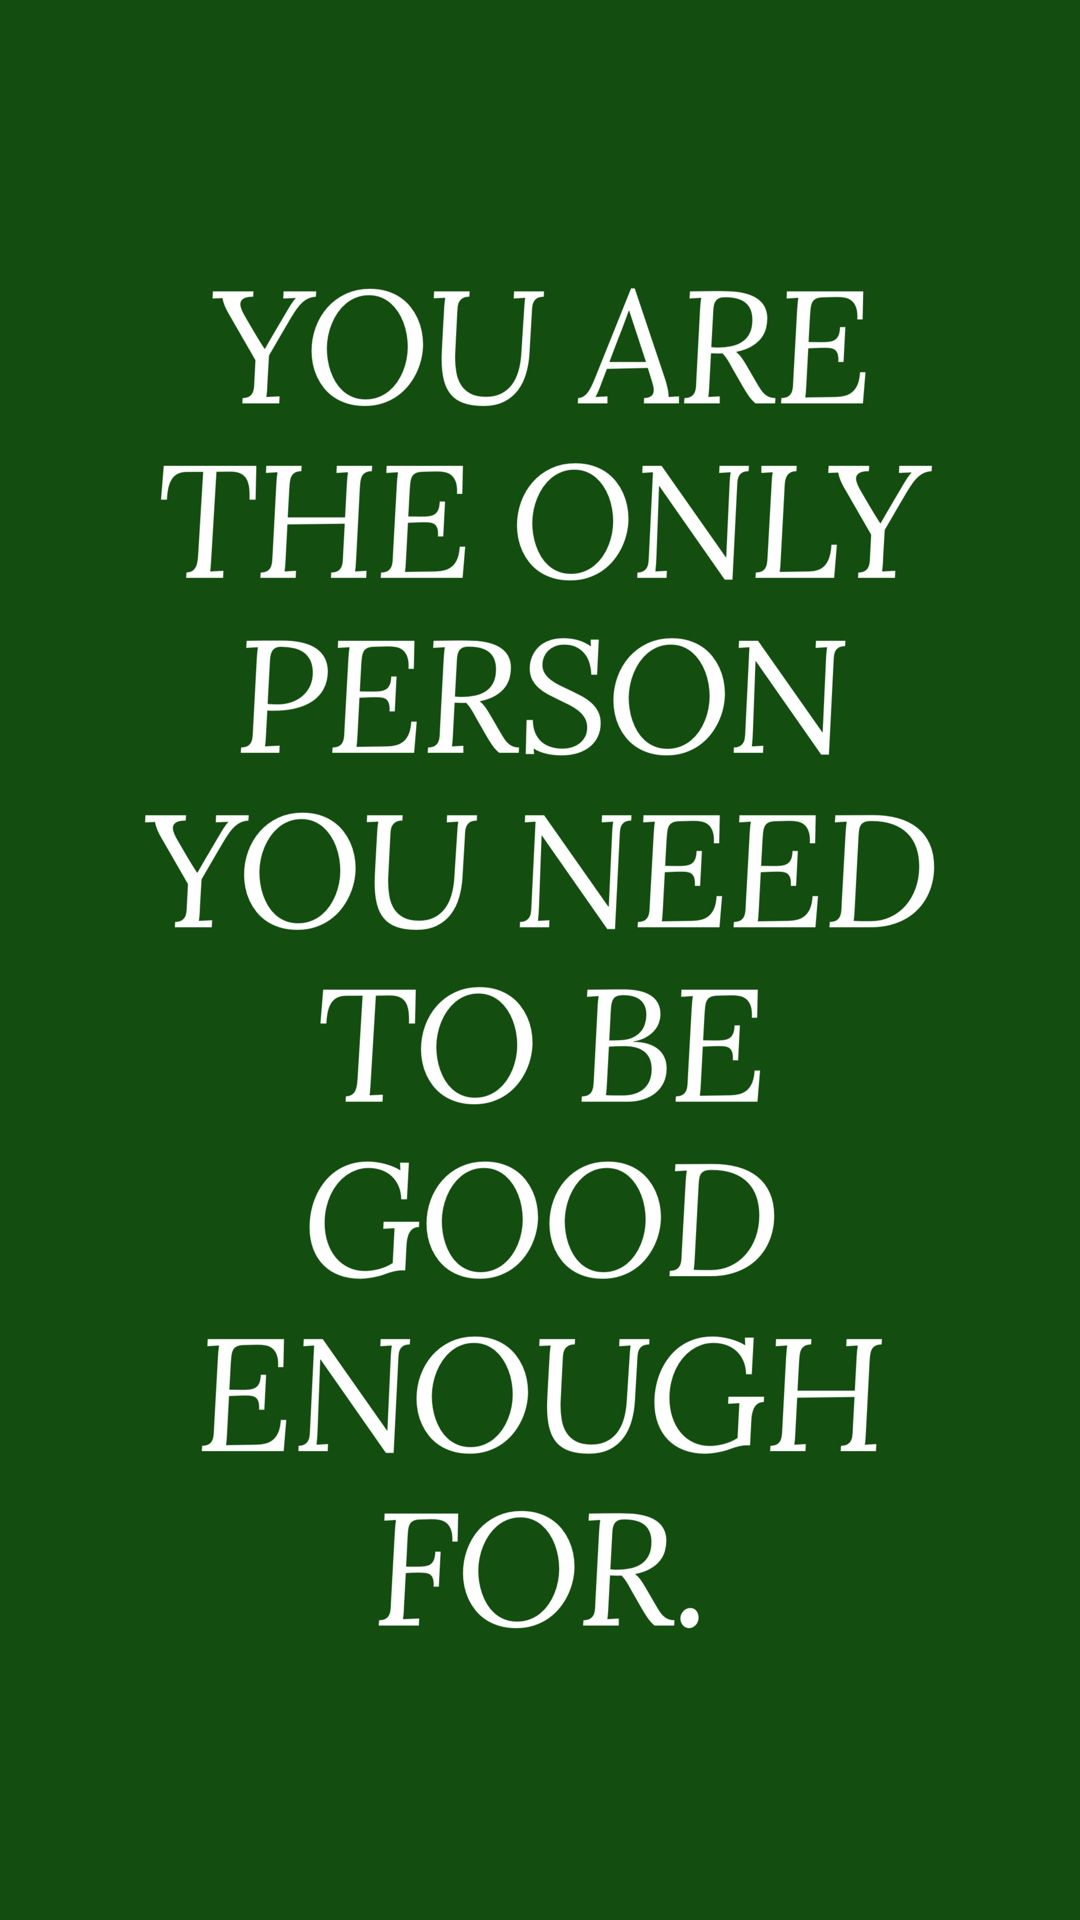 You Are Good Enough Quotes Sayings And Quotes Pinterest Quotes